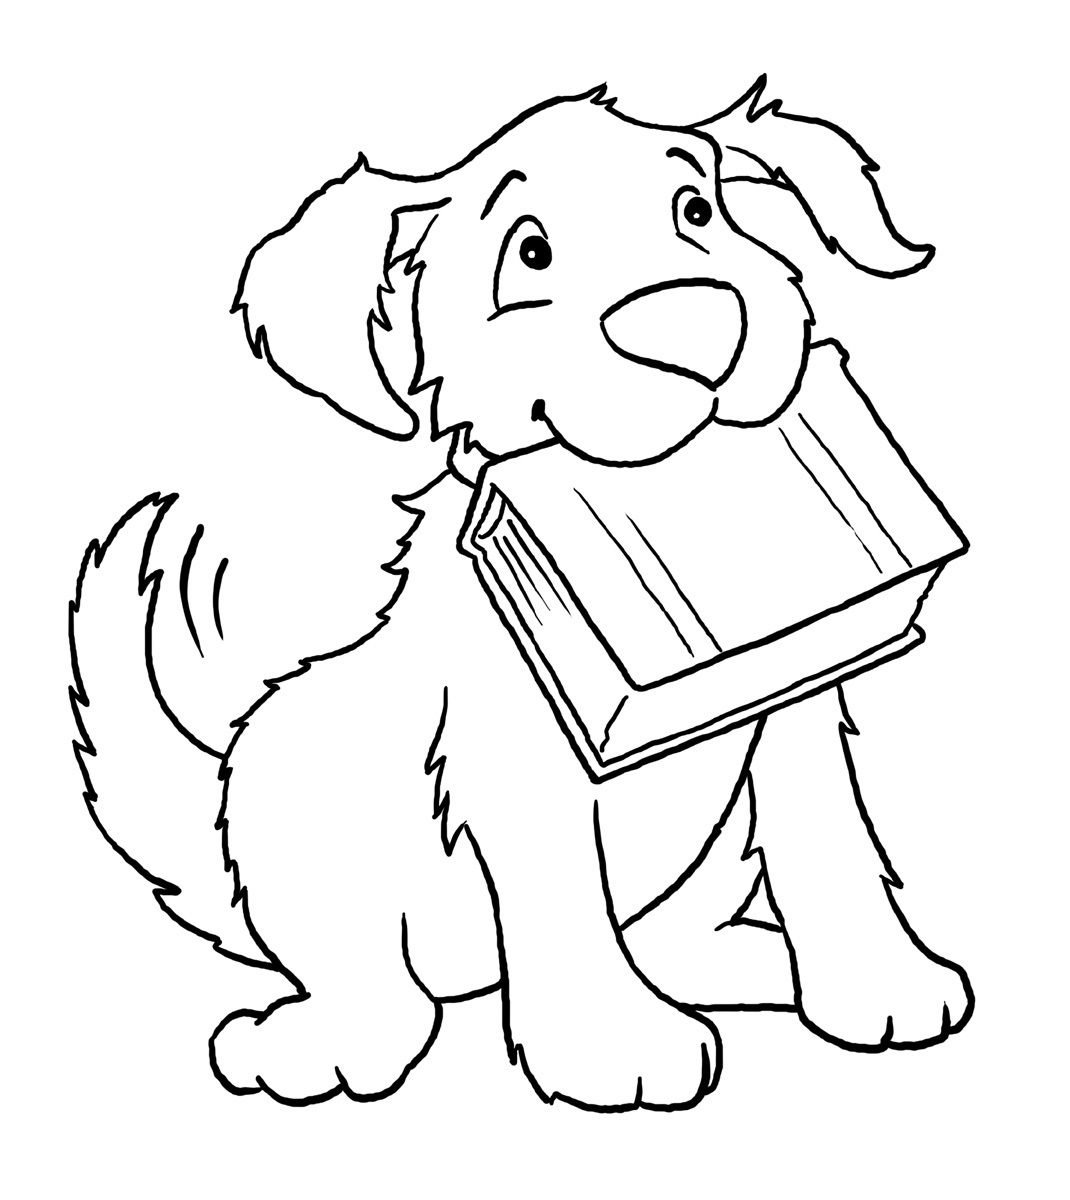 free coloring dog pages - photo#39